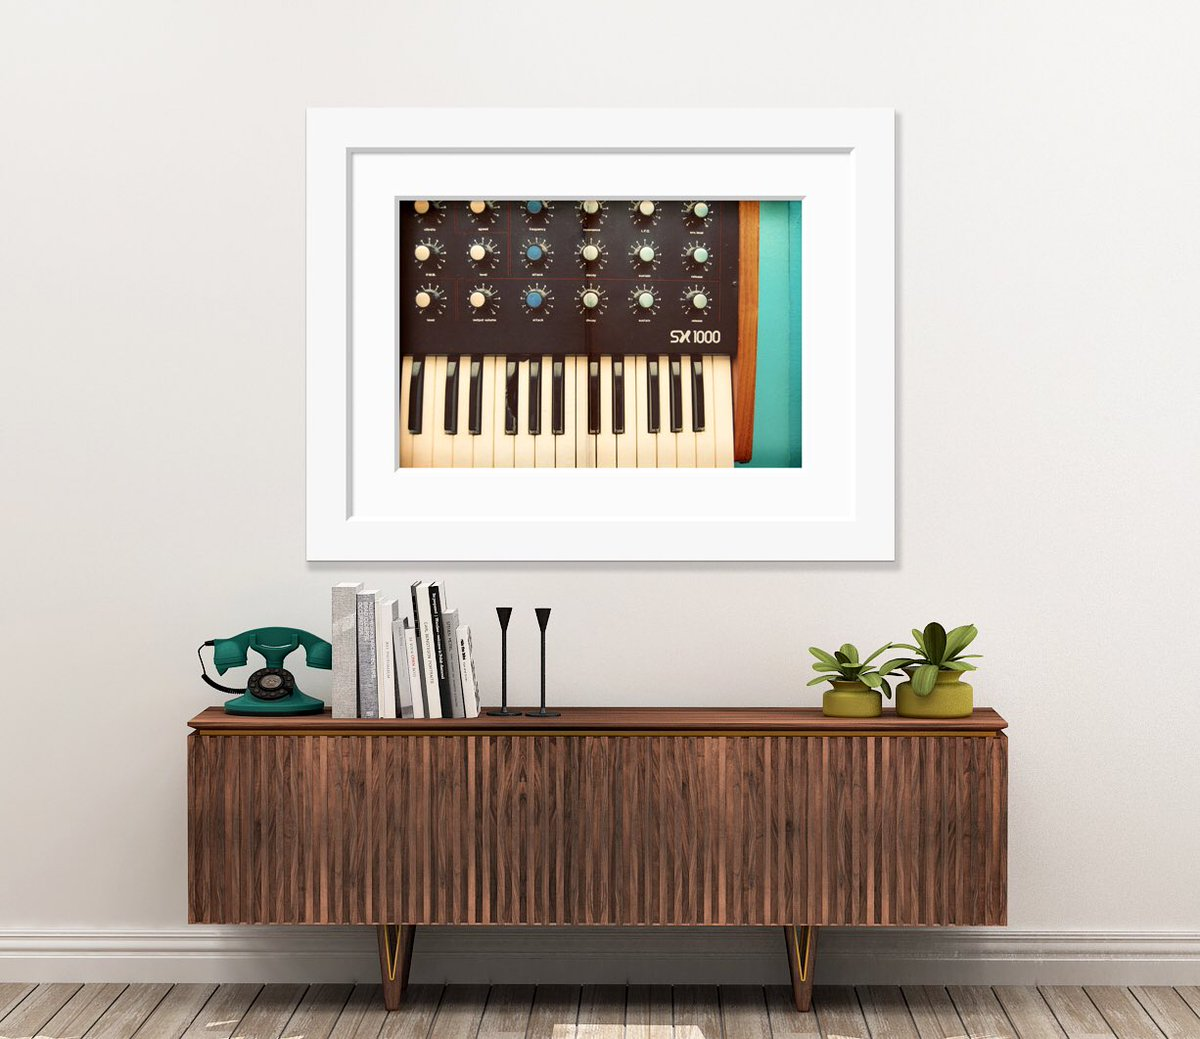 Art that complements your mid century style  @Etsy  http:// etsy.me/2goYxoS  &nbsp;   #vintage #keyboard #synth #midcenturymodern #interiordesign #mcm<br>http://pic.twitter.com/zlOCCk8Ey3